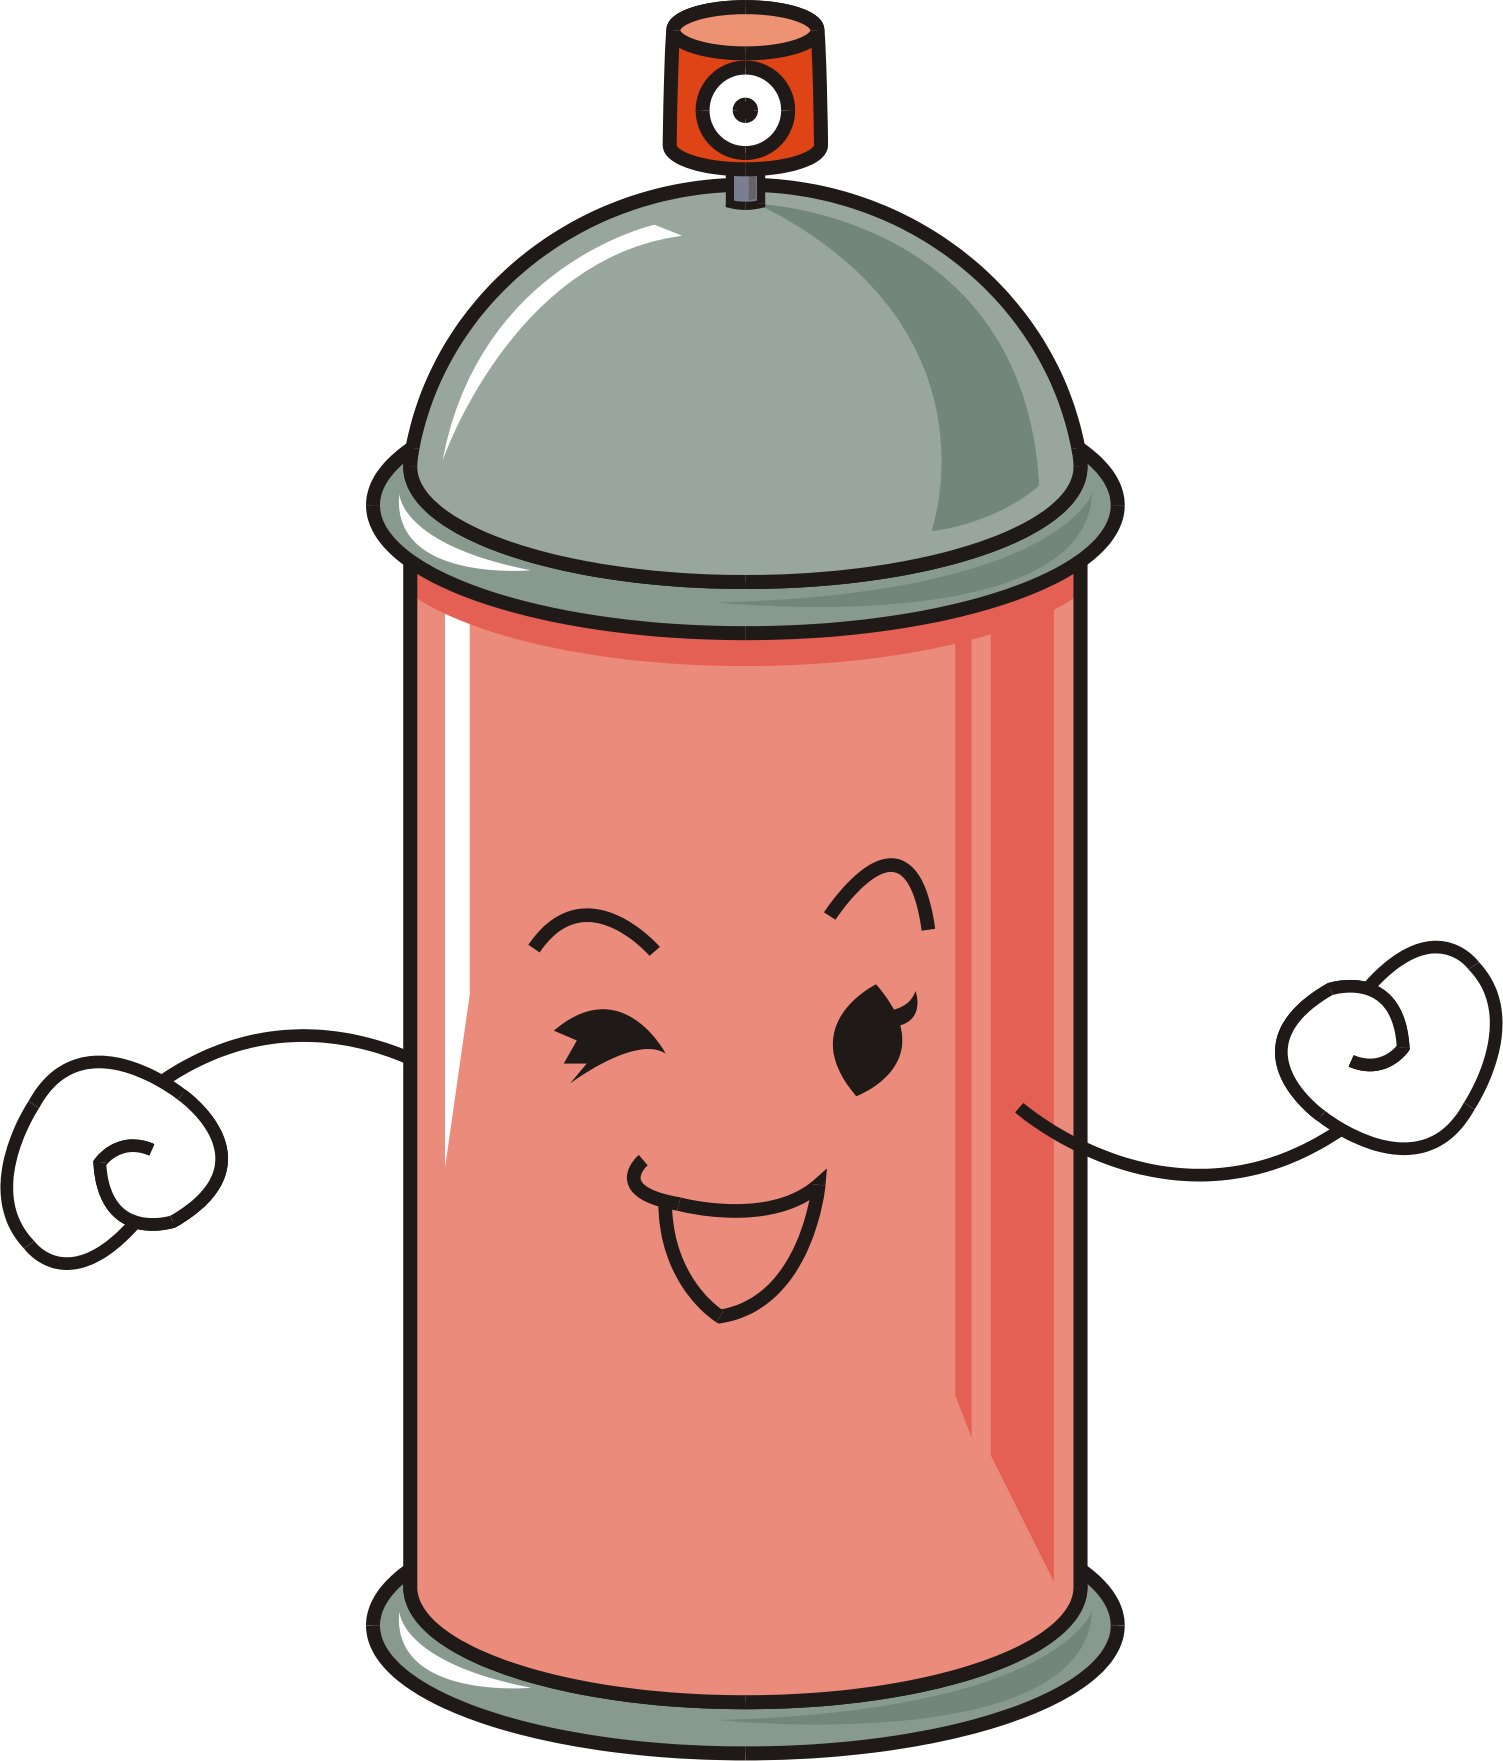 Clipart fire illustration. Hydrant drawing at getdrawings